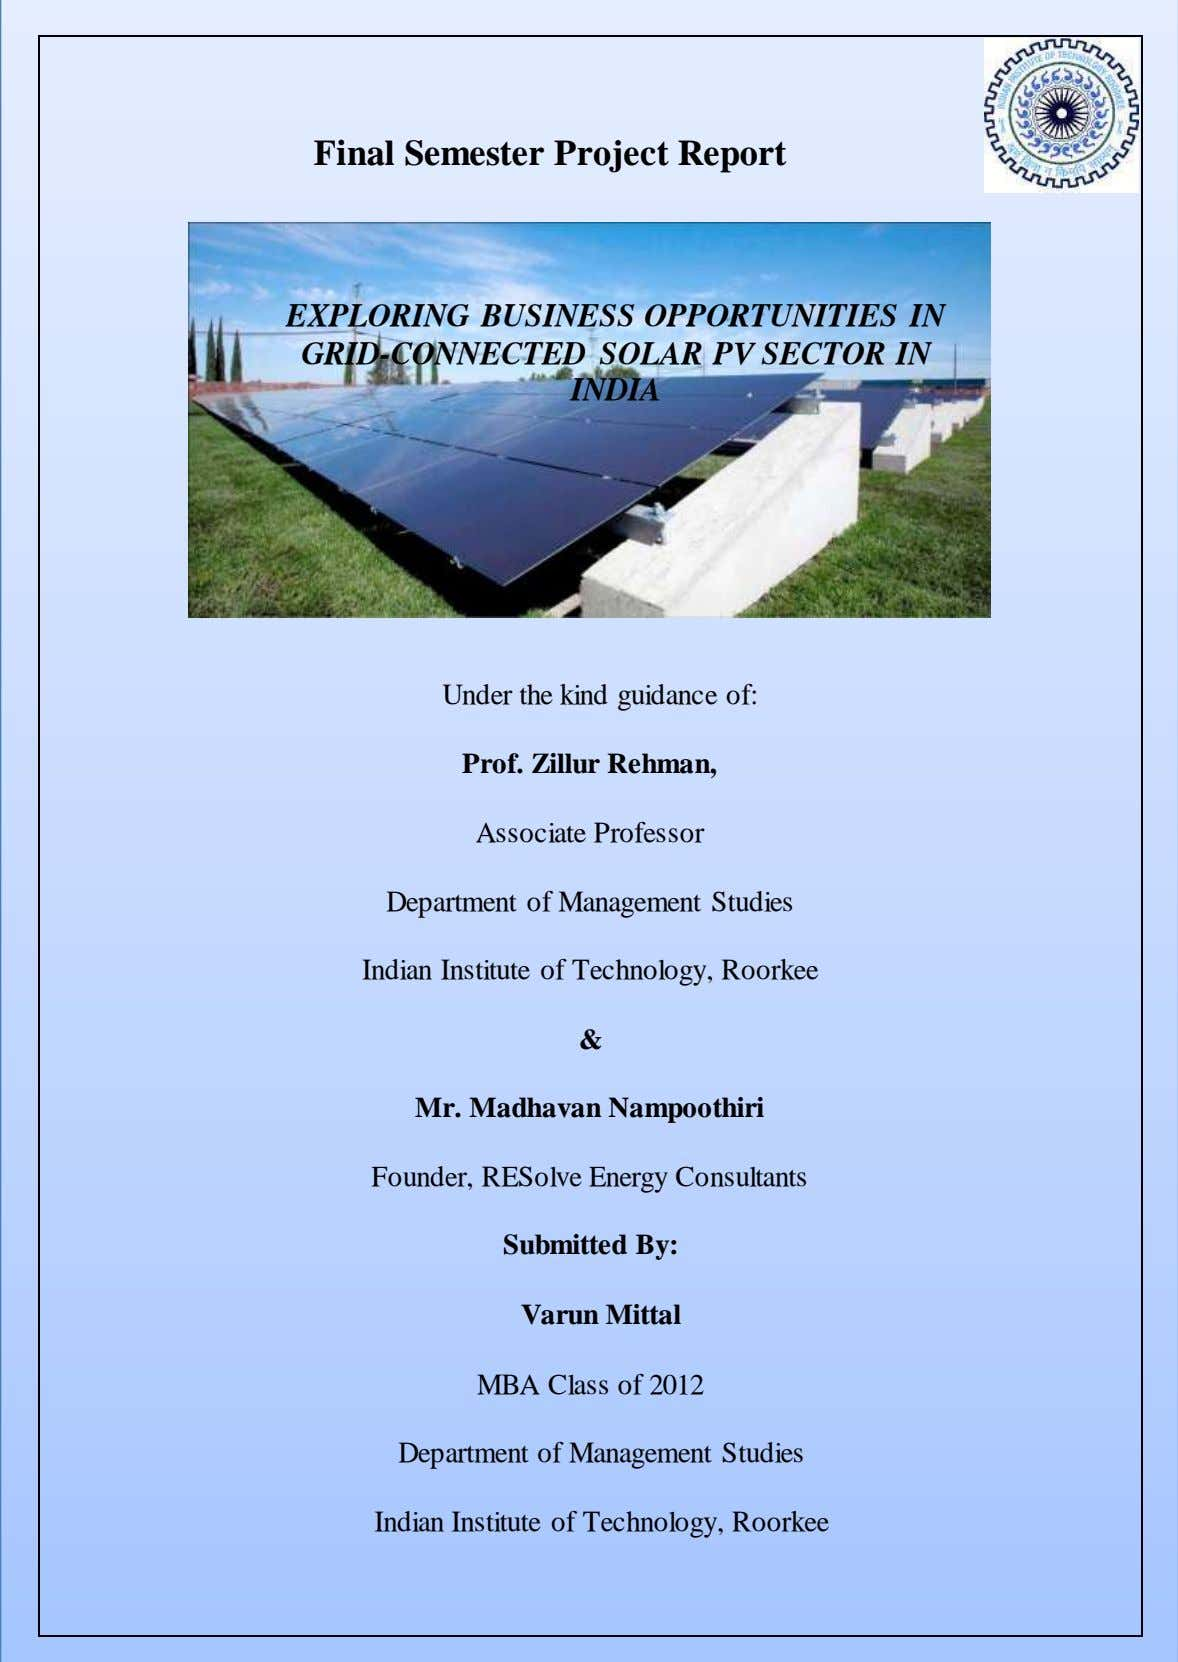 Final Semester Project Report EXPLORING BUSINESS OPPORTUNITIES IN GRID-CONNECTED SOLAR PV SECTOR IN INDIA Under